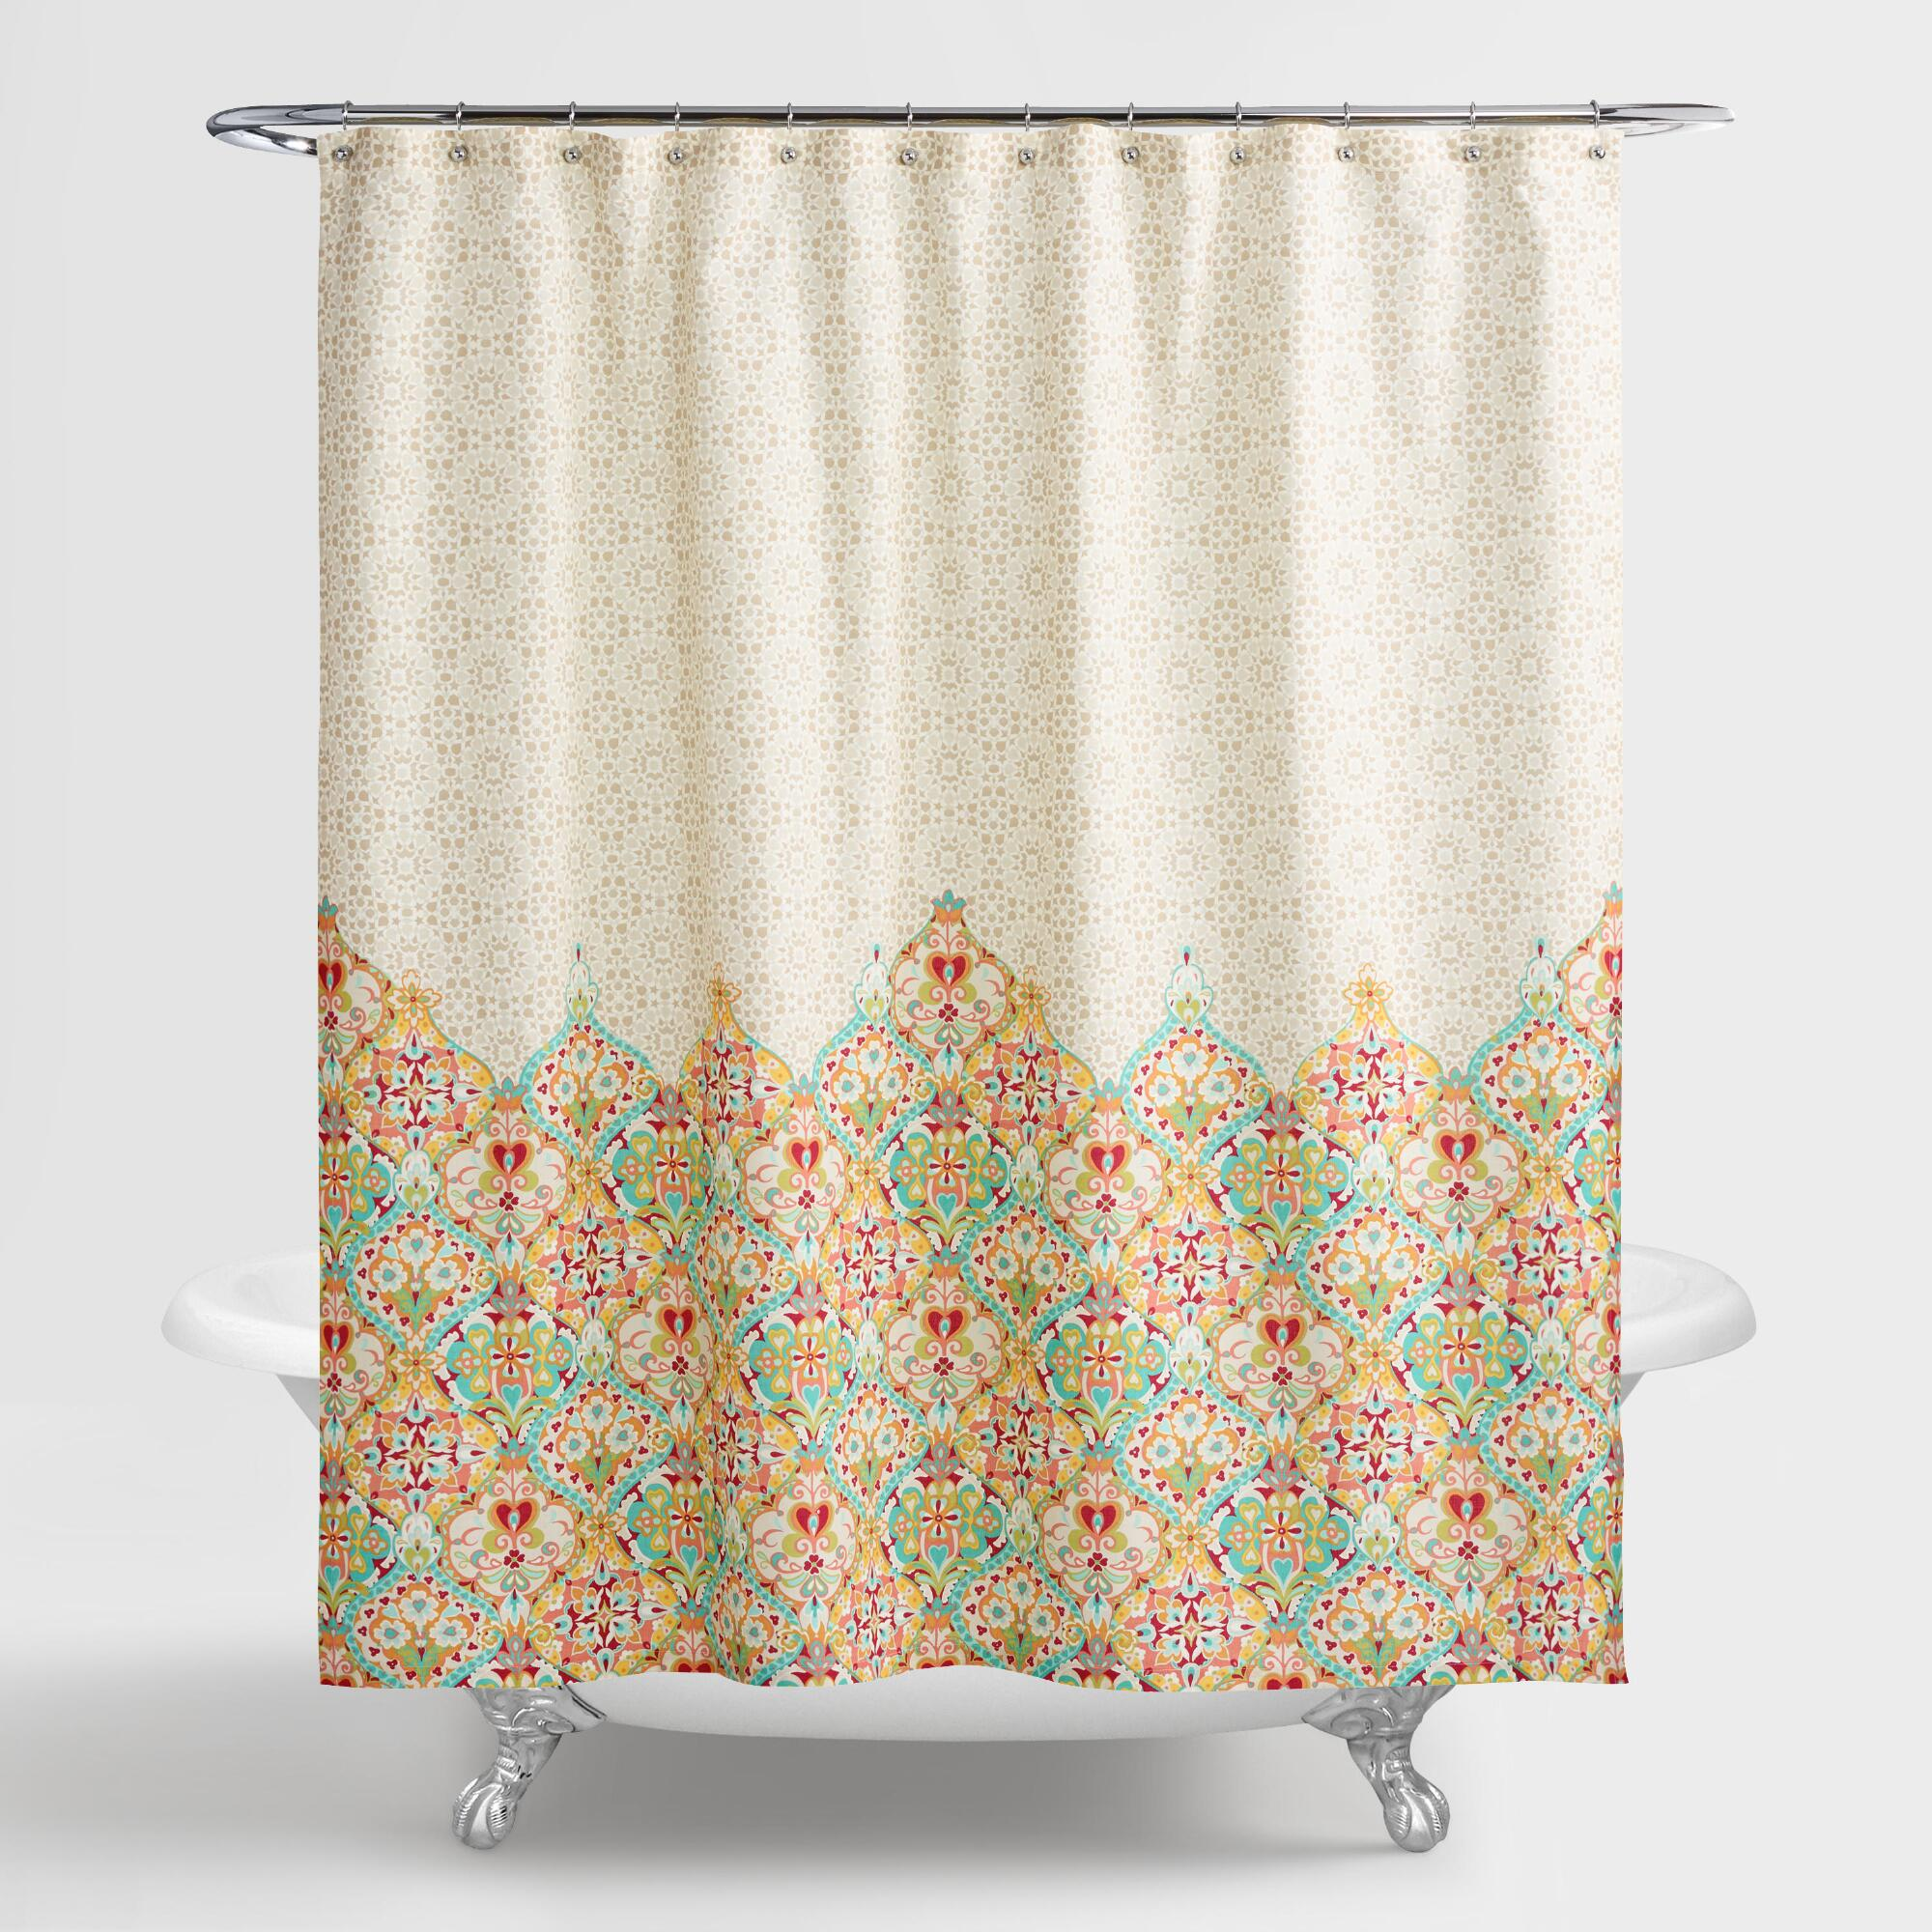 Shower Curtains  Shower Curtain Rings World Market - Chocolate coral and gold shower curtain